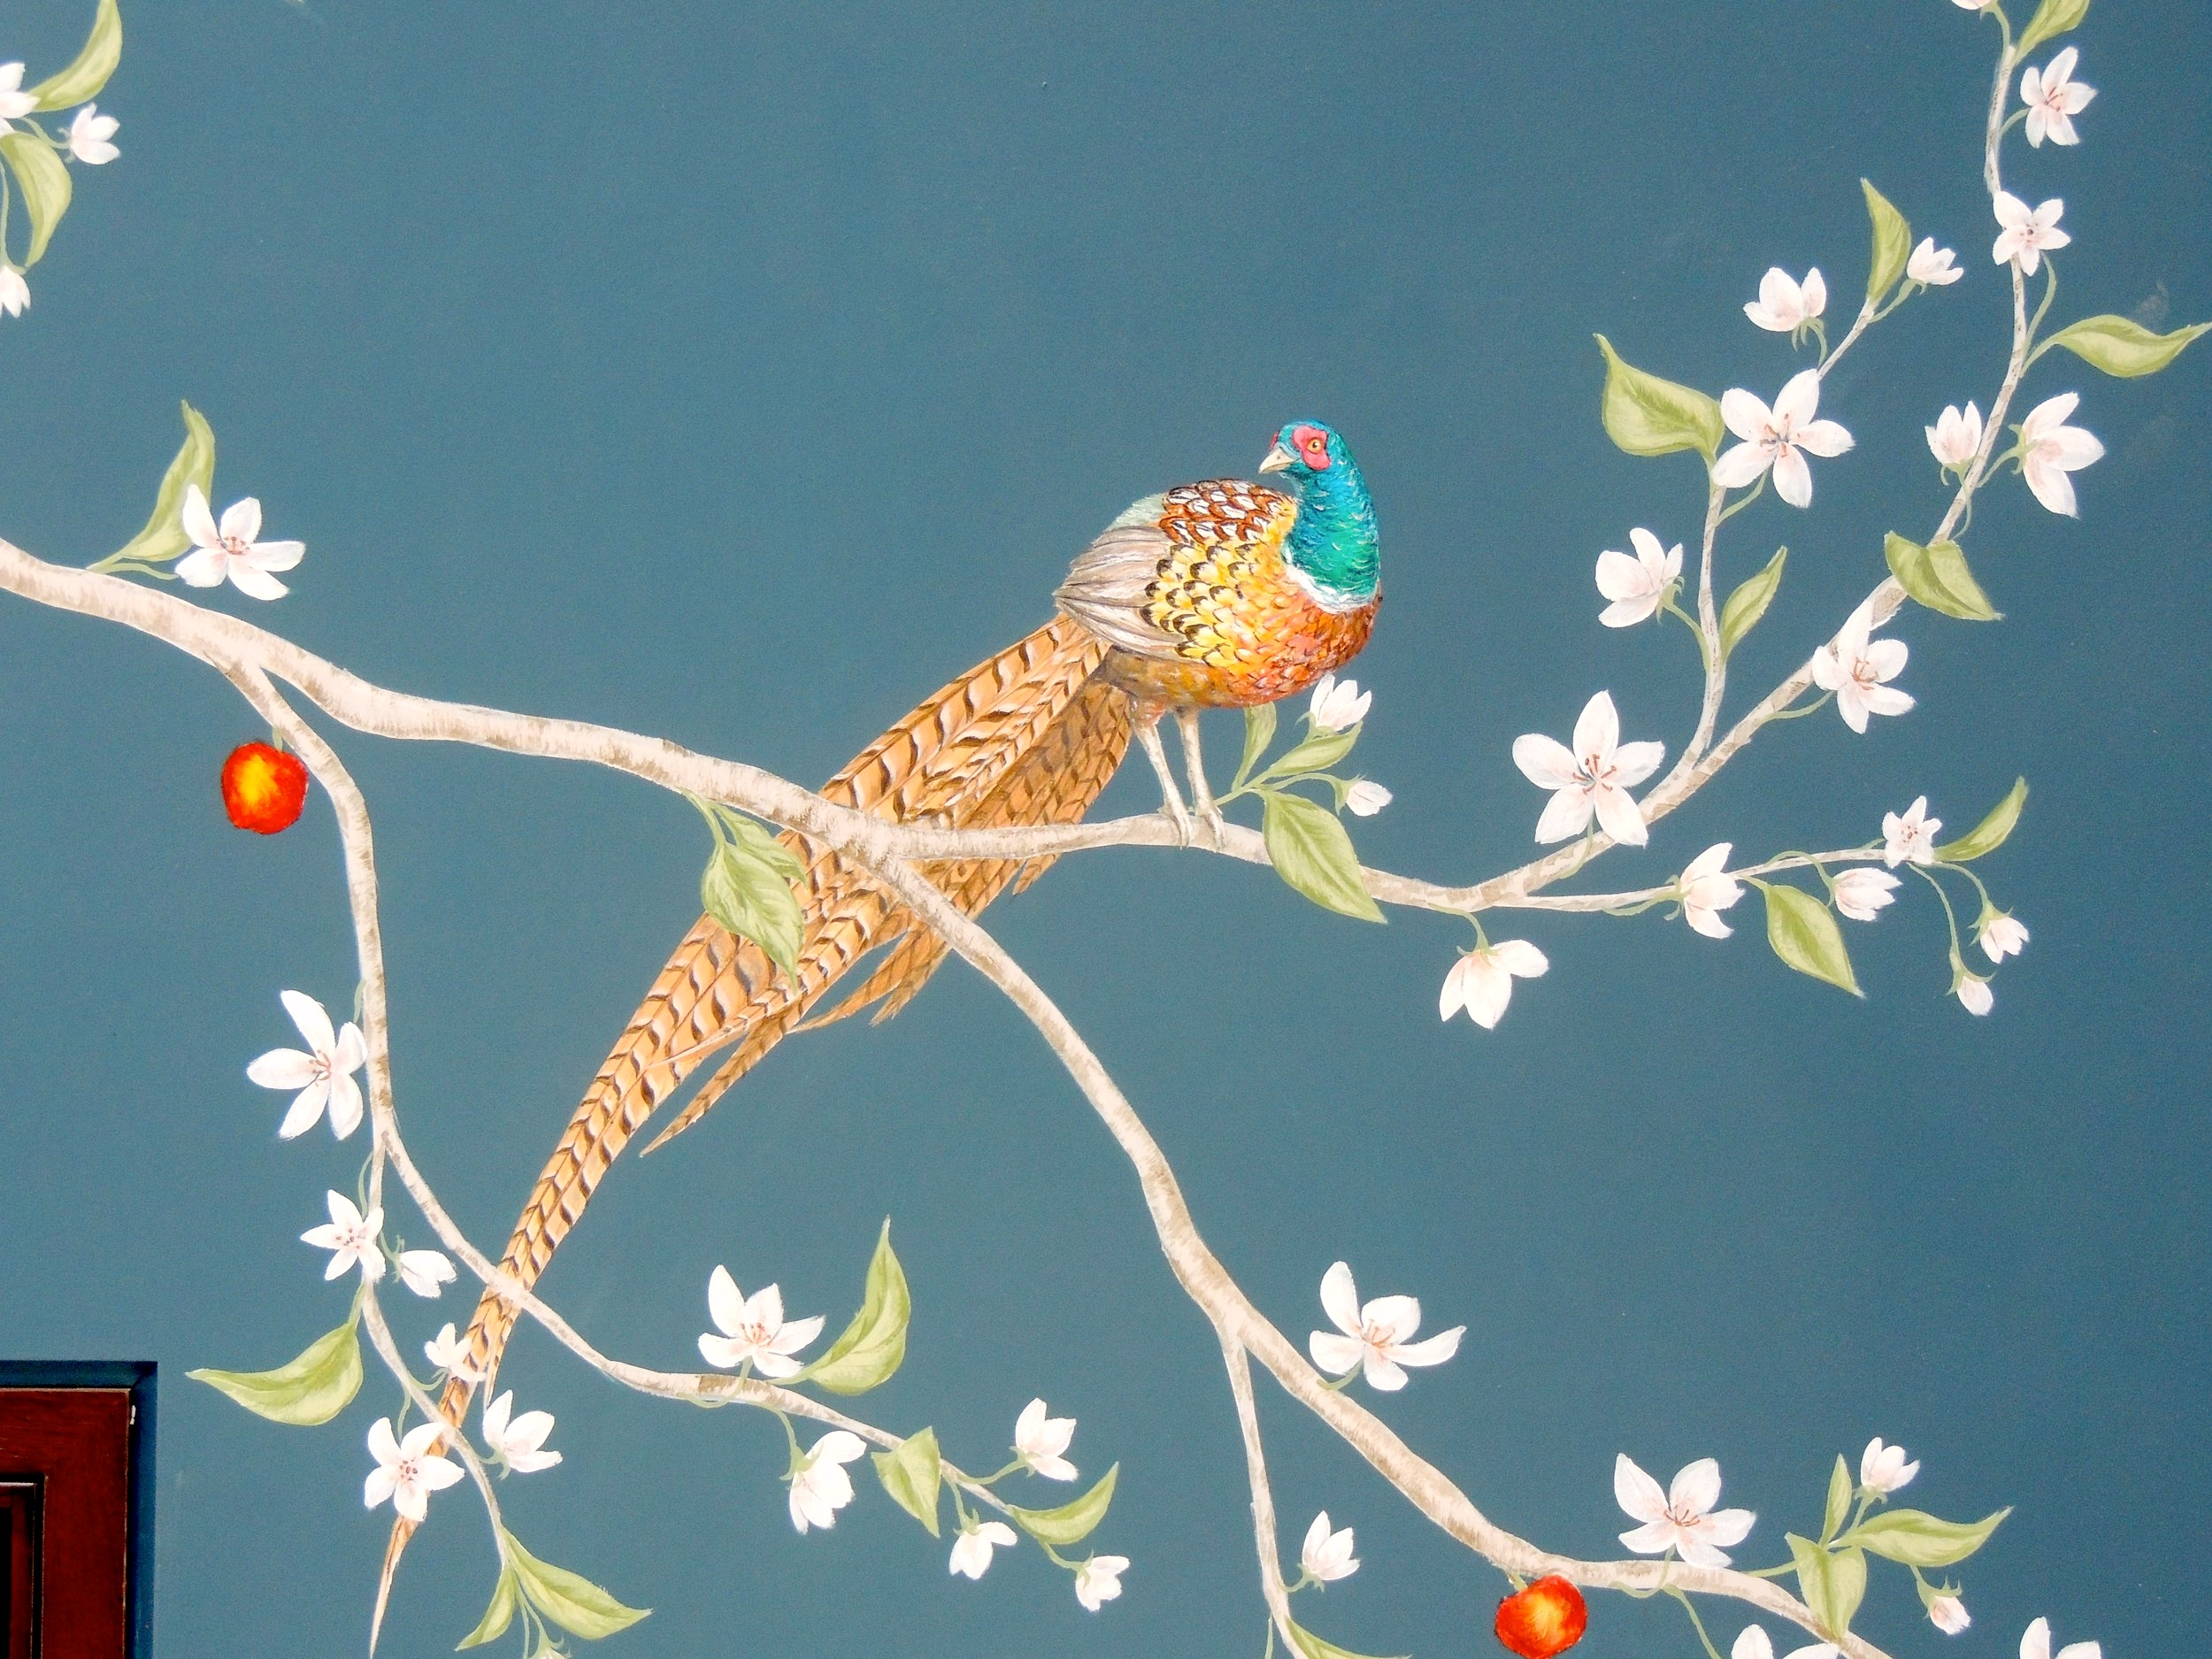 Frederick Wimsett - murals and artistic design - Collared Pheasant on Blue.jpeg